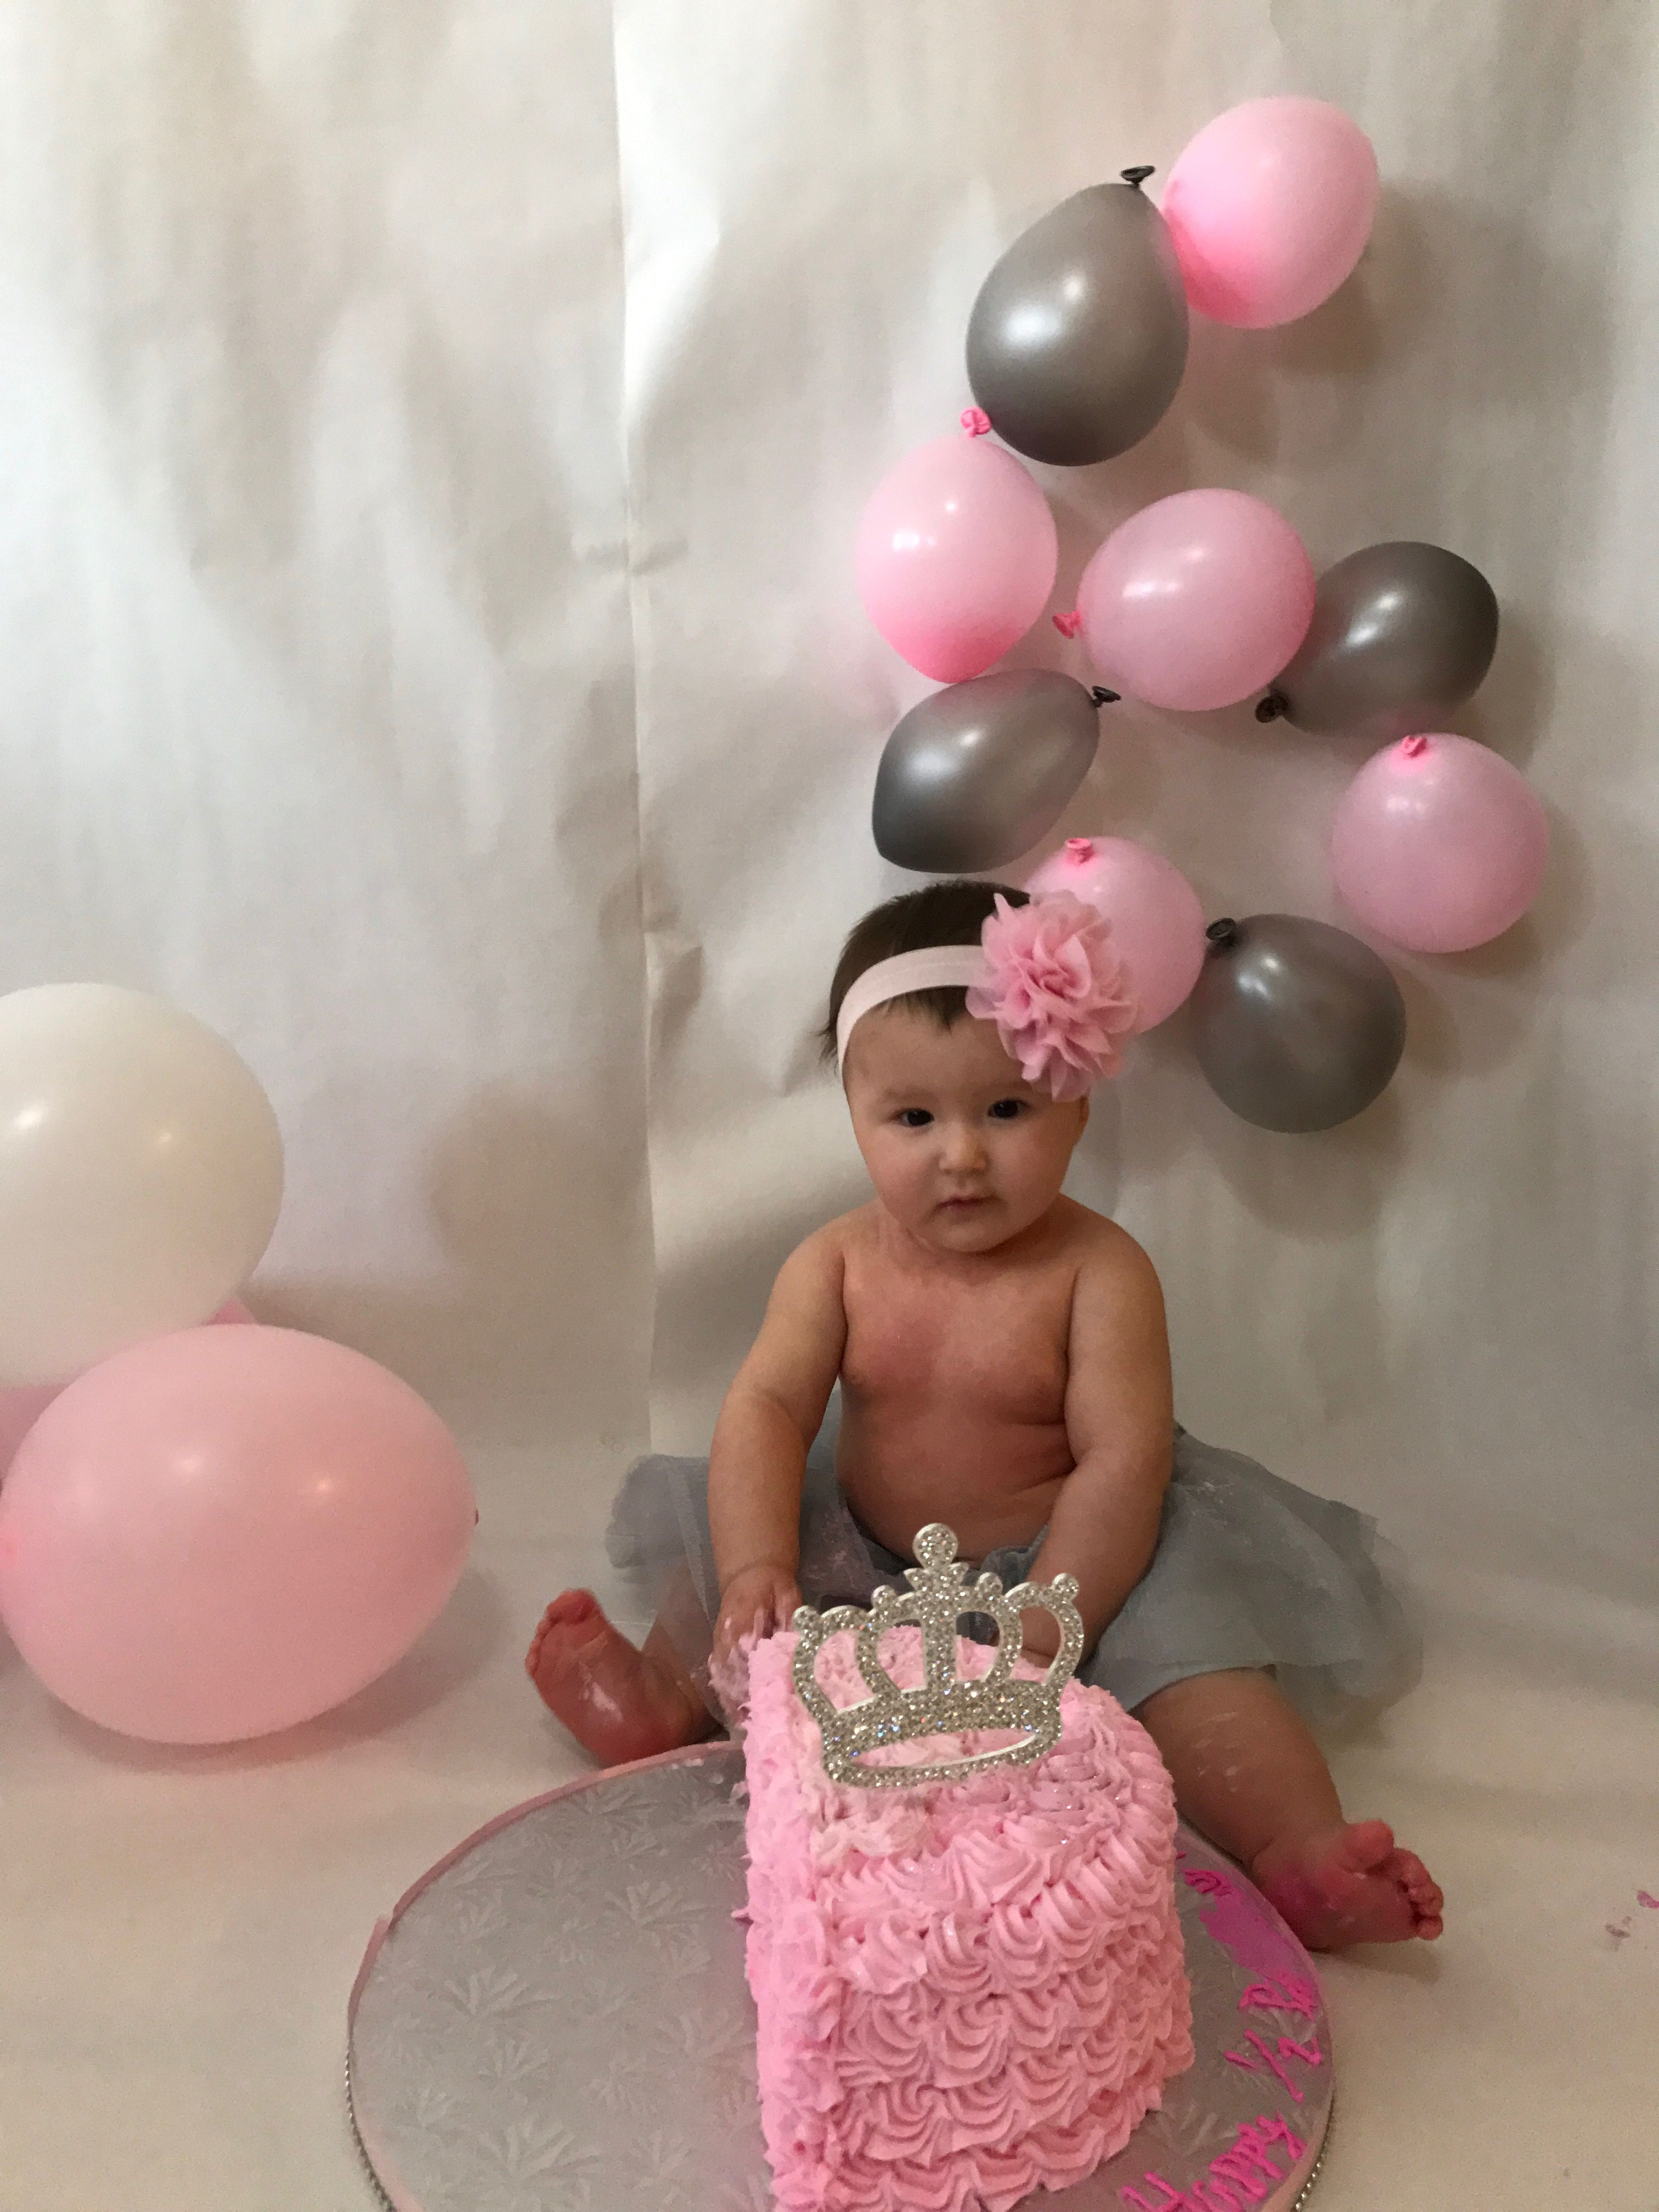 6 Months Old Photo Shoot For A Baby Girl Baby Girl 6 Month Olds